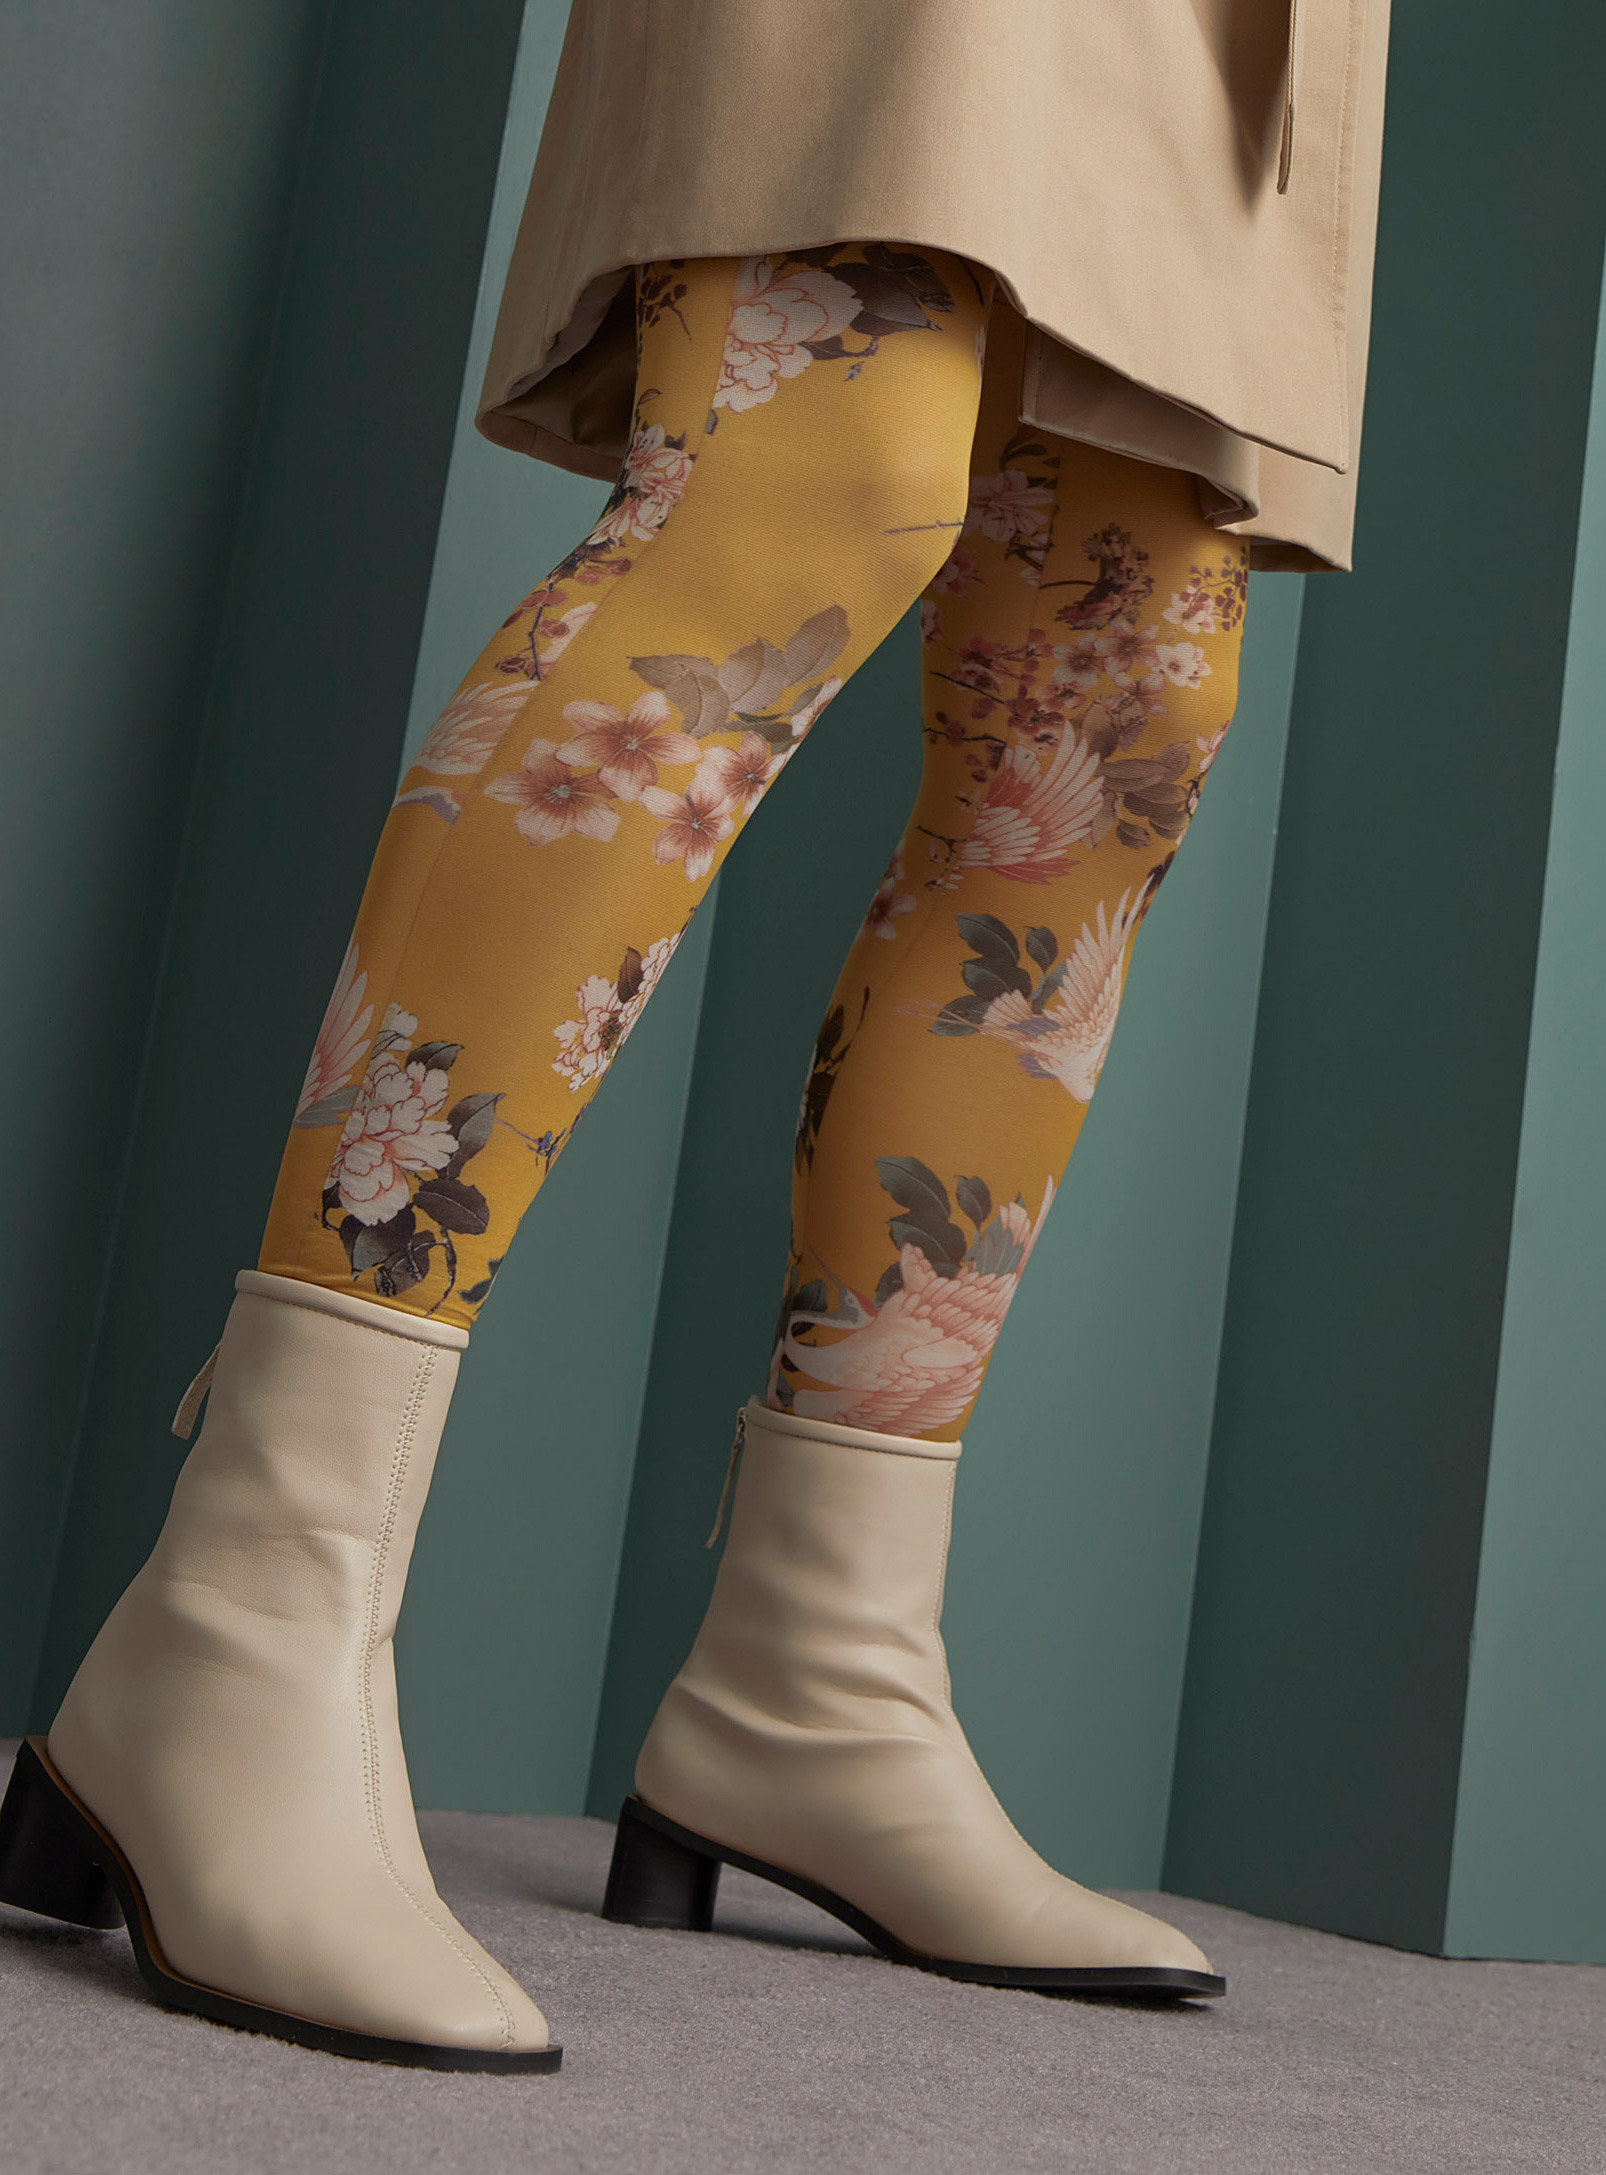 A person wearing floral tights with heeled boots